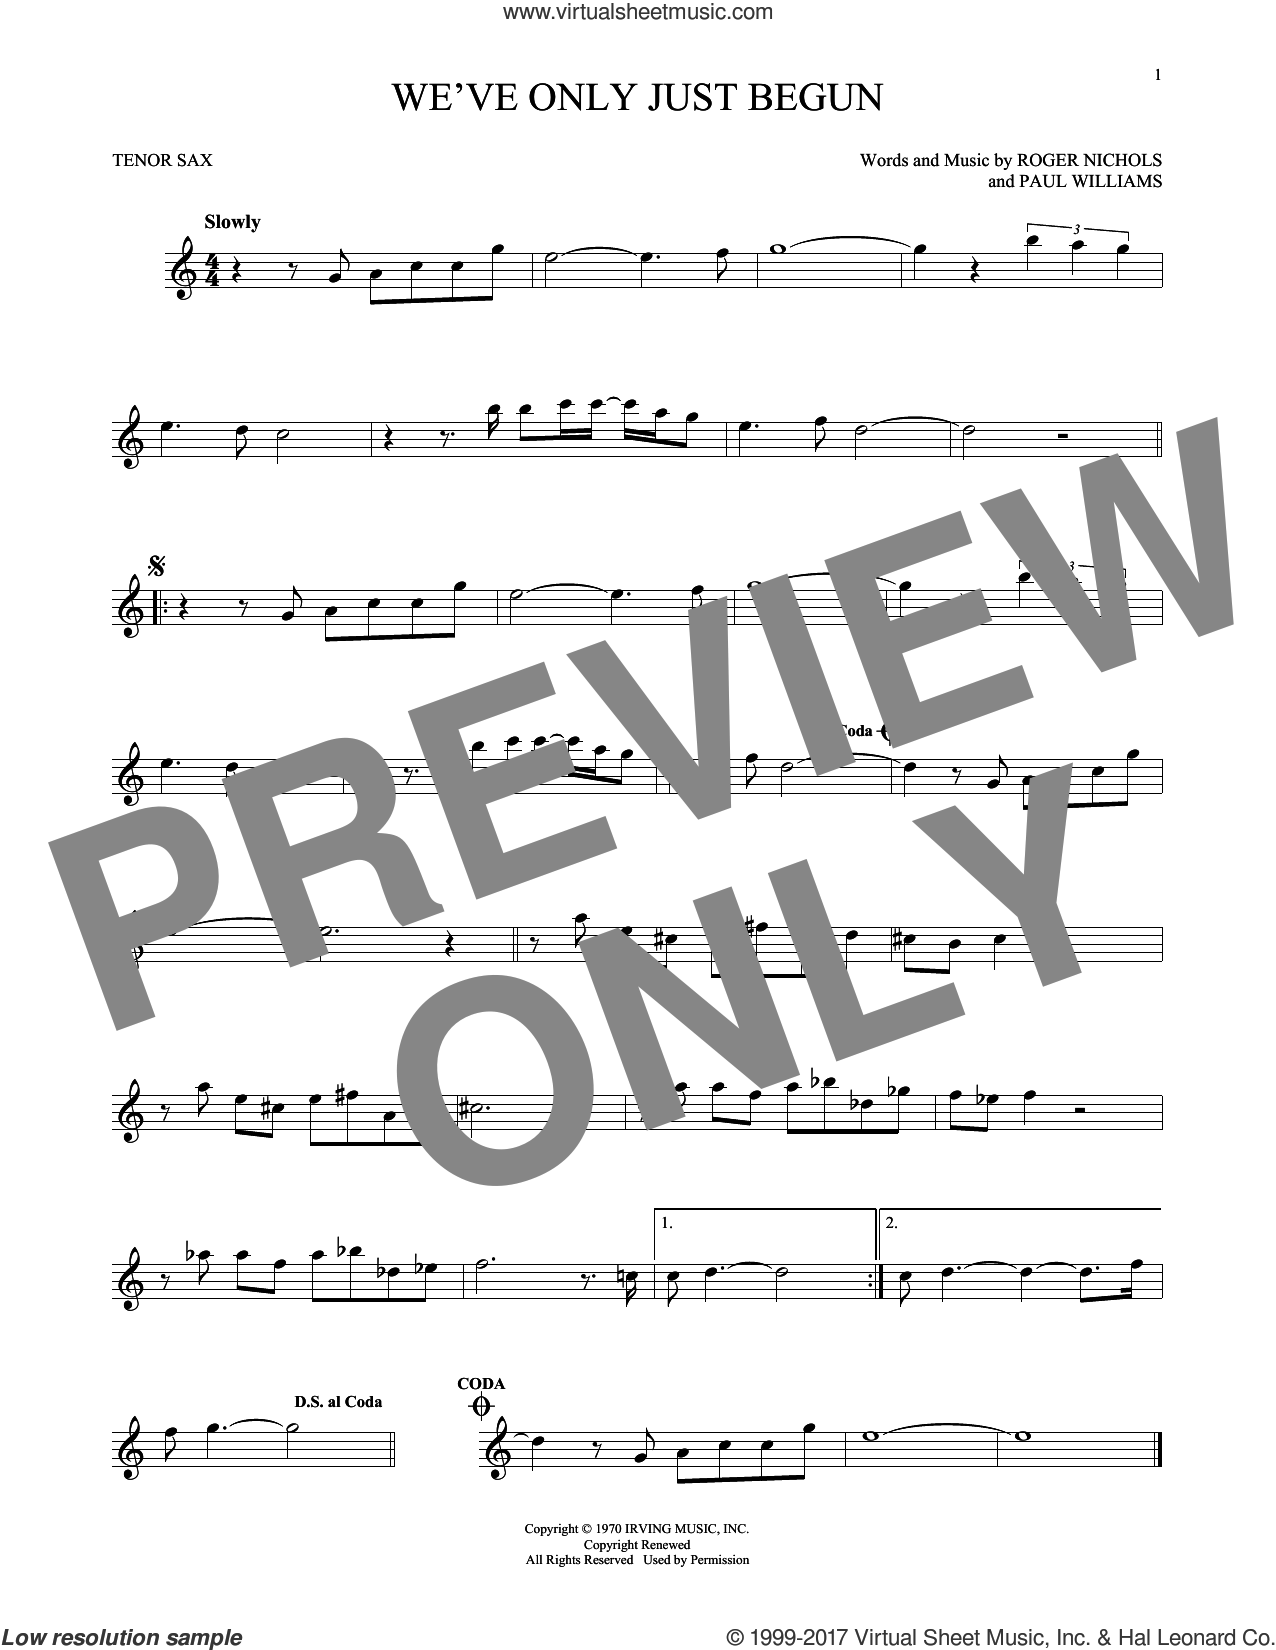 We've Only Just Begun sheet music for tenor saxophone solo by Paul Williams, Carpenters and Roger Nichols, intermediate